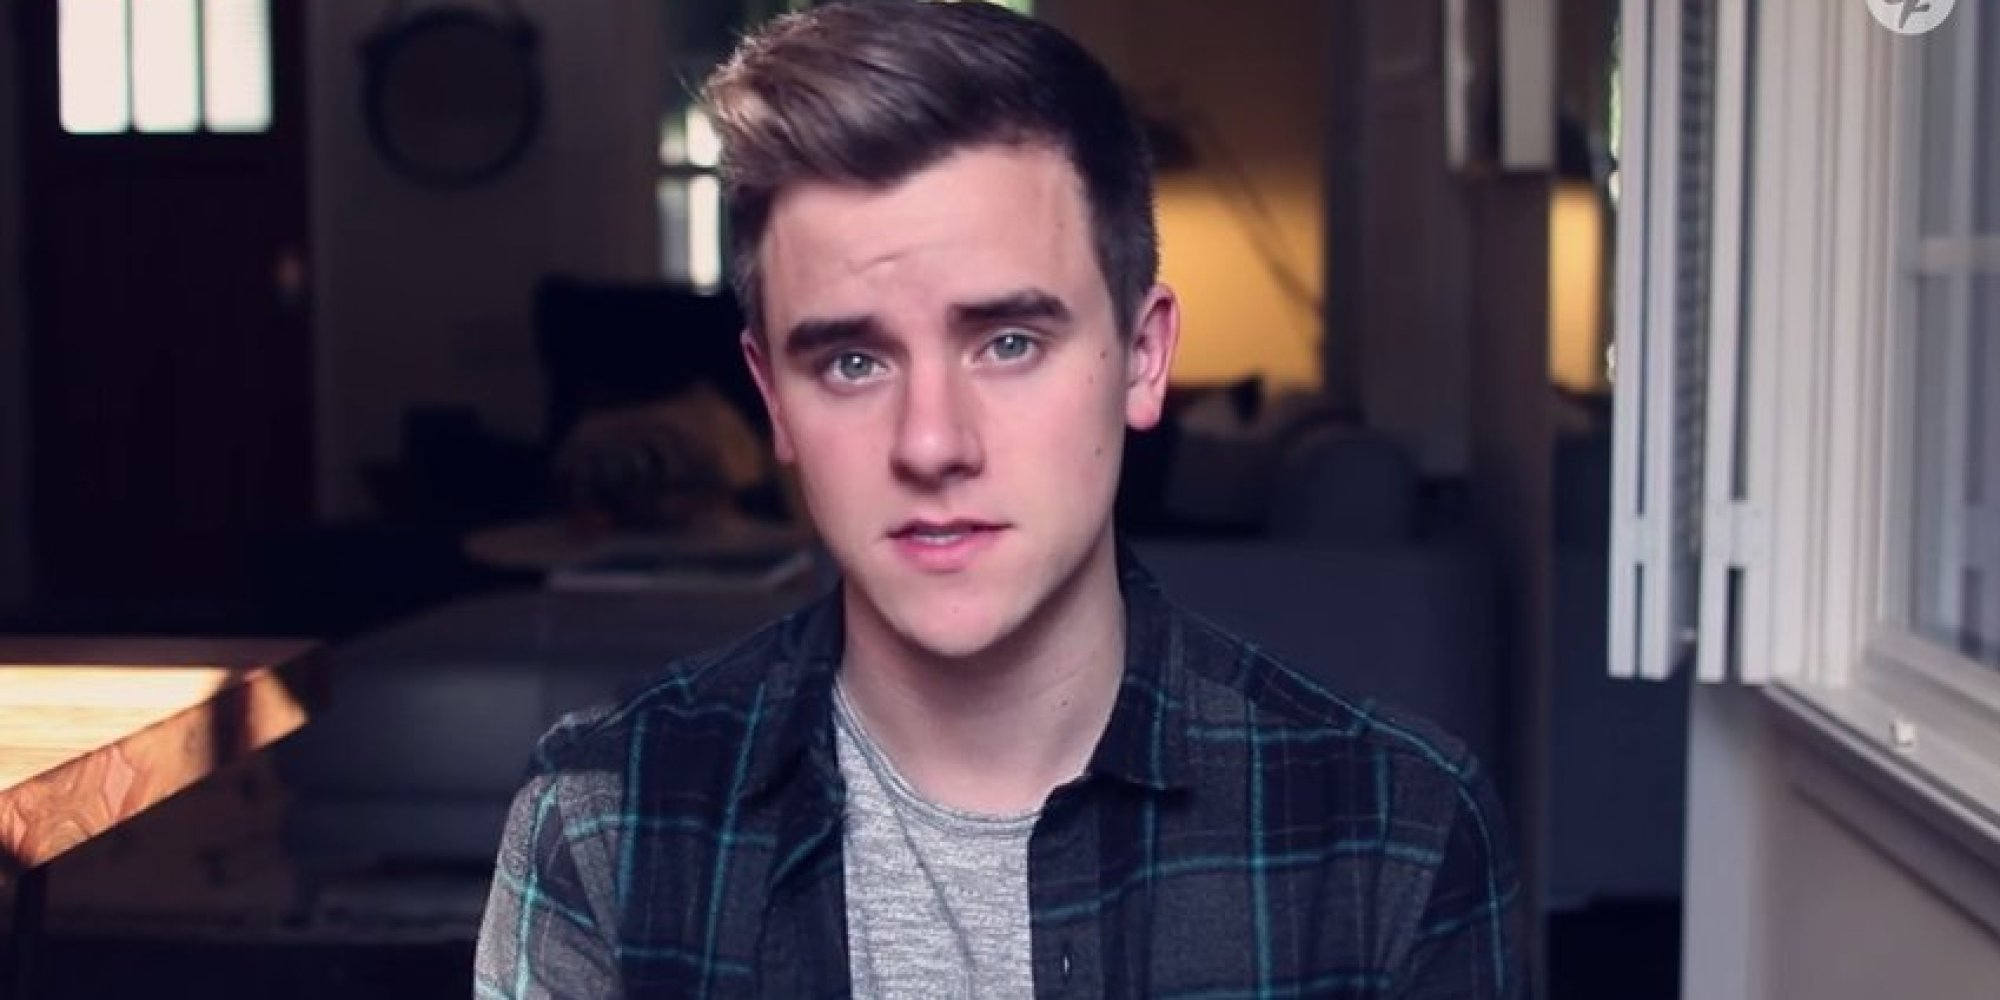 Connor Franta Relationship Youtube Star Connor Franta